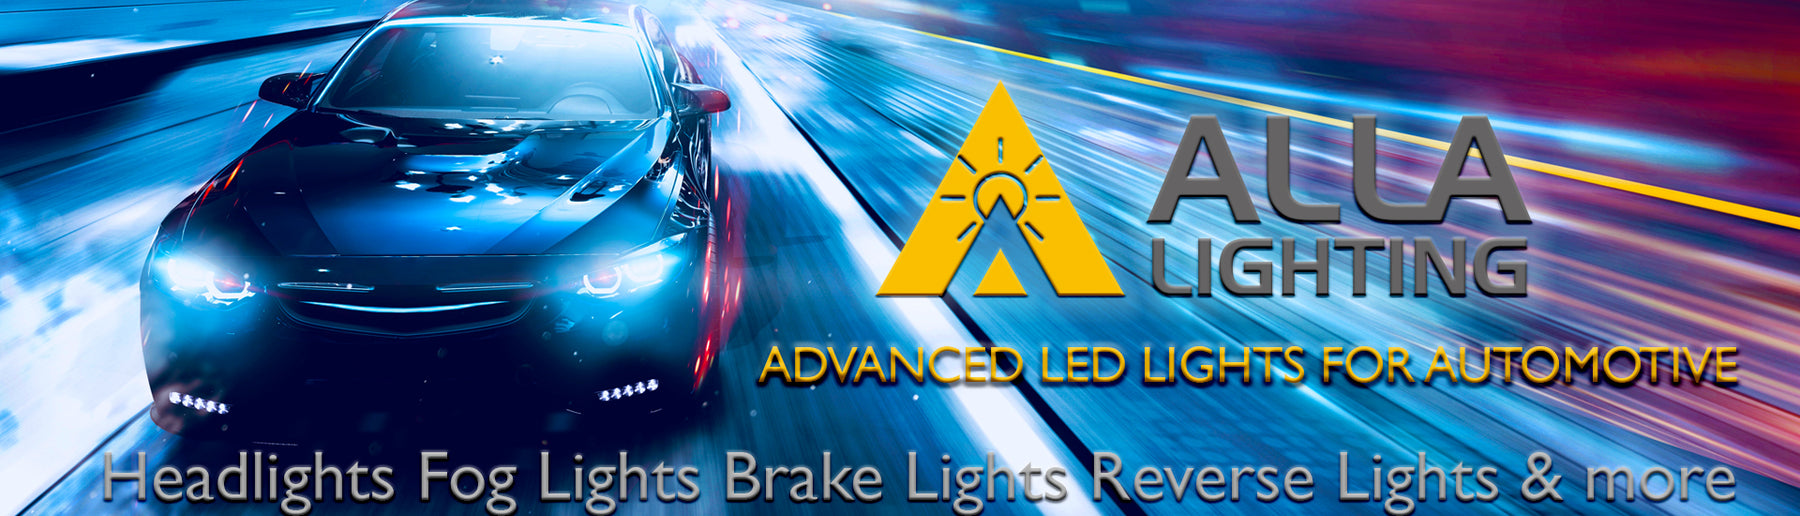 LED Daytime Running Light Upgrade for Cars Trucks SUVs Vans at ALLALighting.com